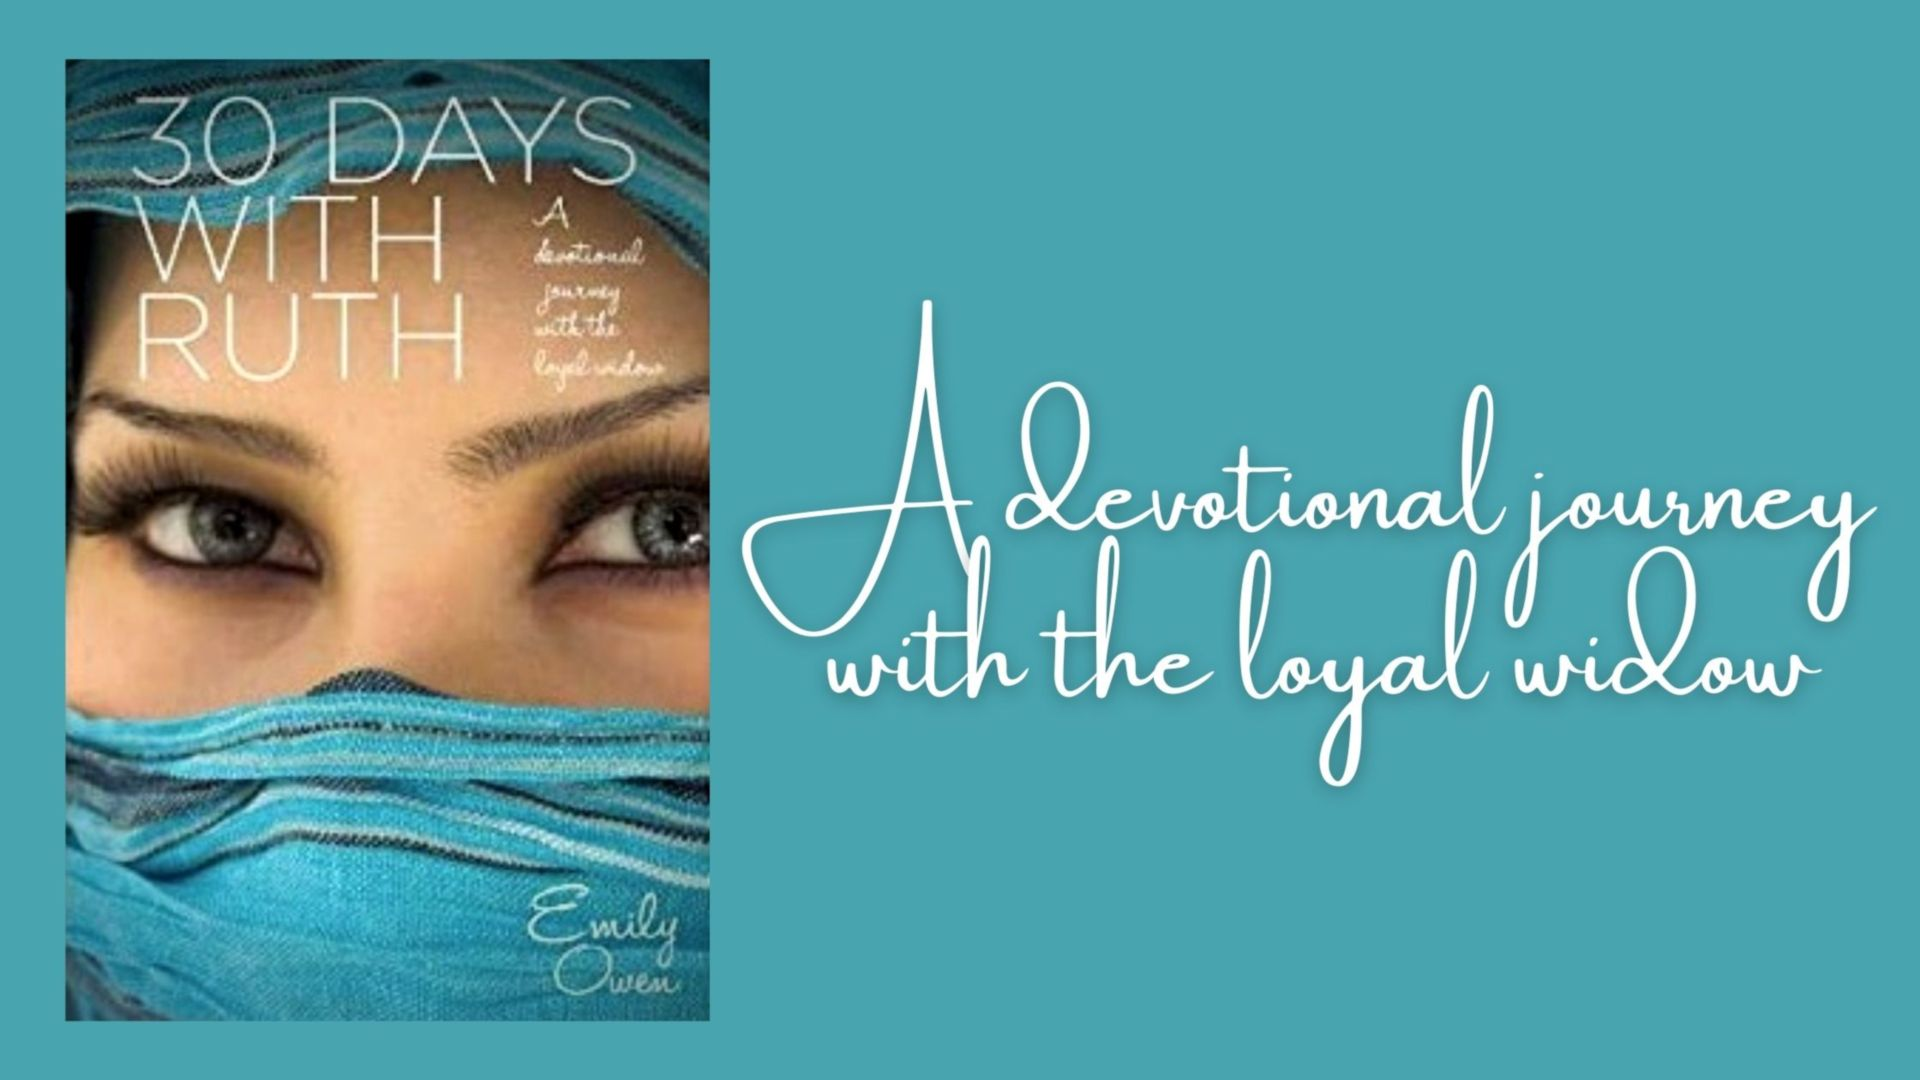 Interview with Emily Owen, author of the devotional '30 Days with Ruth'